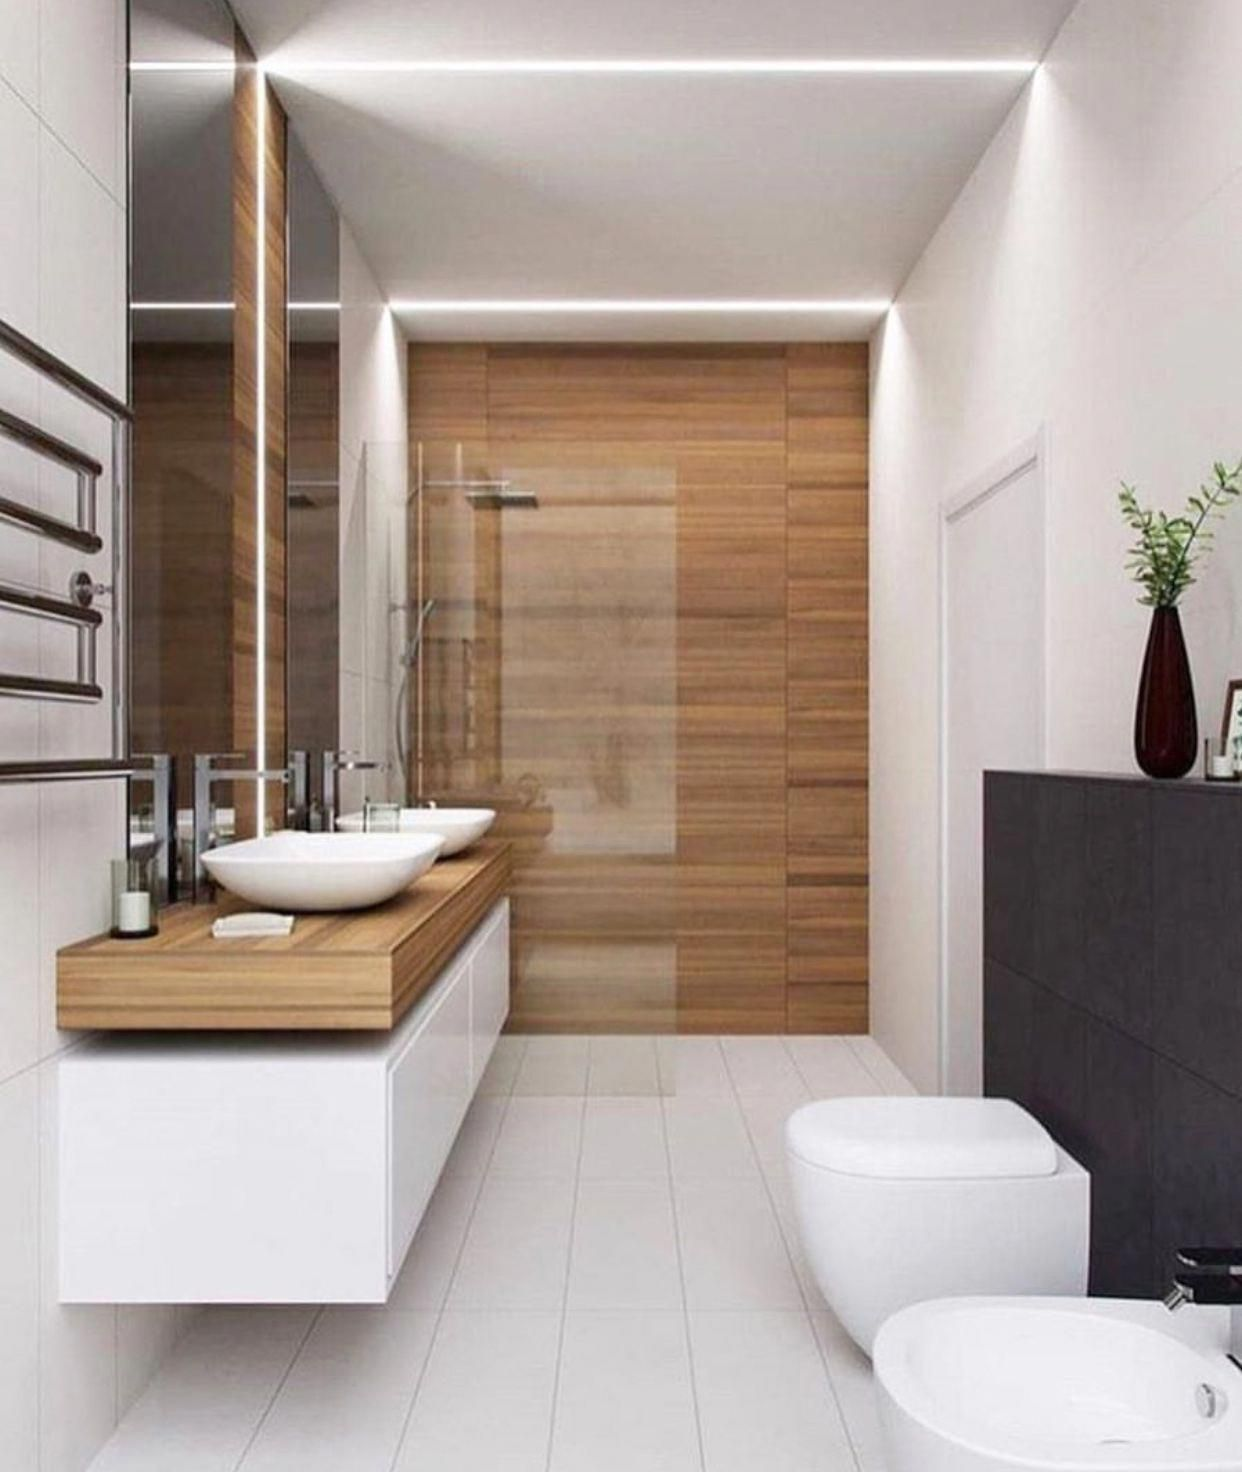 27 Best Small Bathroom Design Ideas That Will Make It Stand Out Bathroomremodelideas Beautiful Bathroom Designs Master Bathroom Design Small Bathroom Remodel [ jpg ]